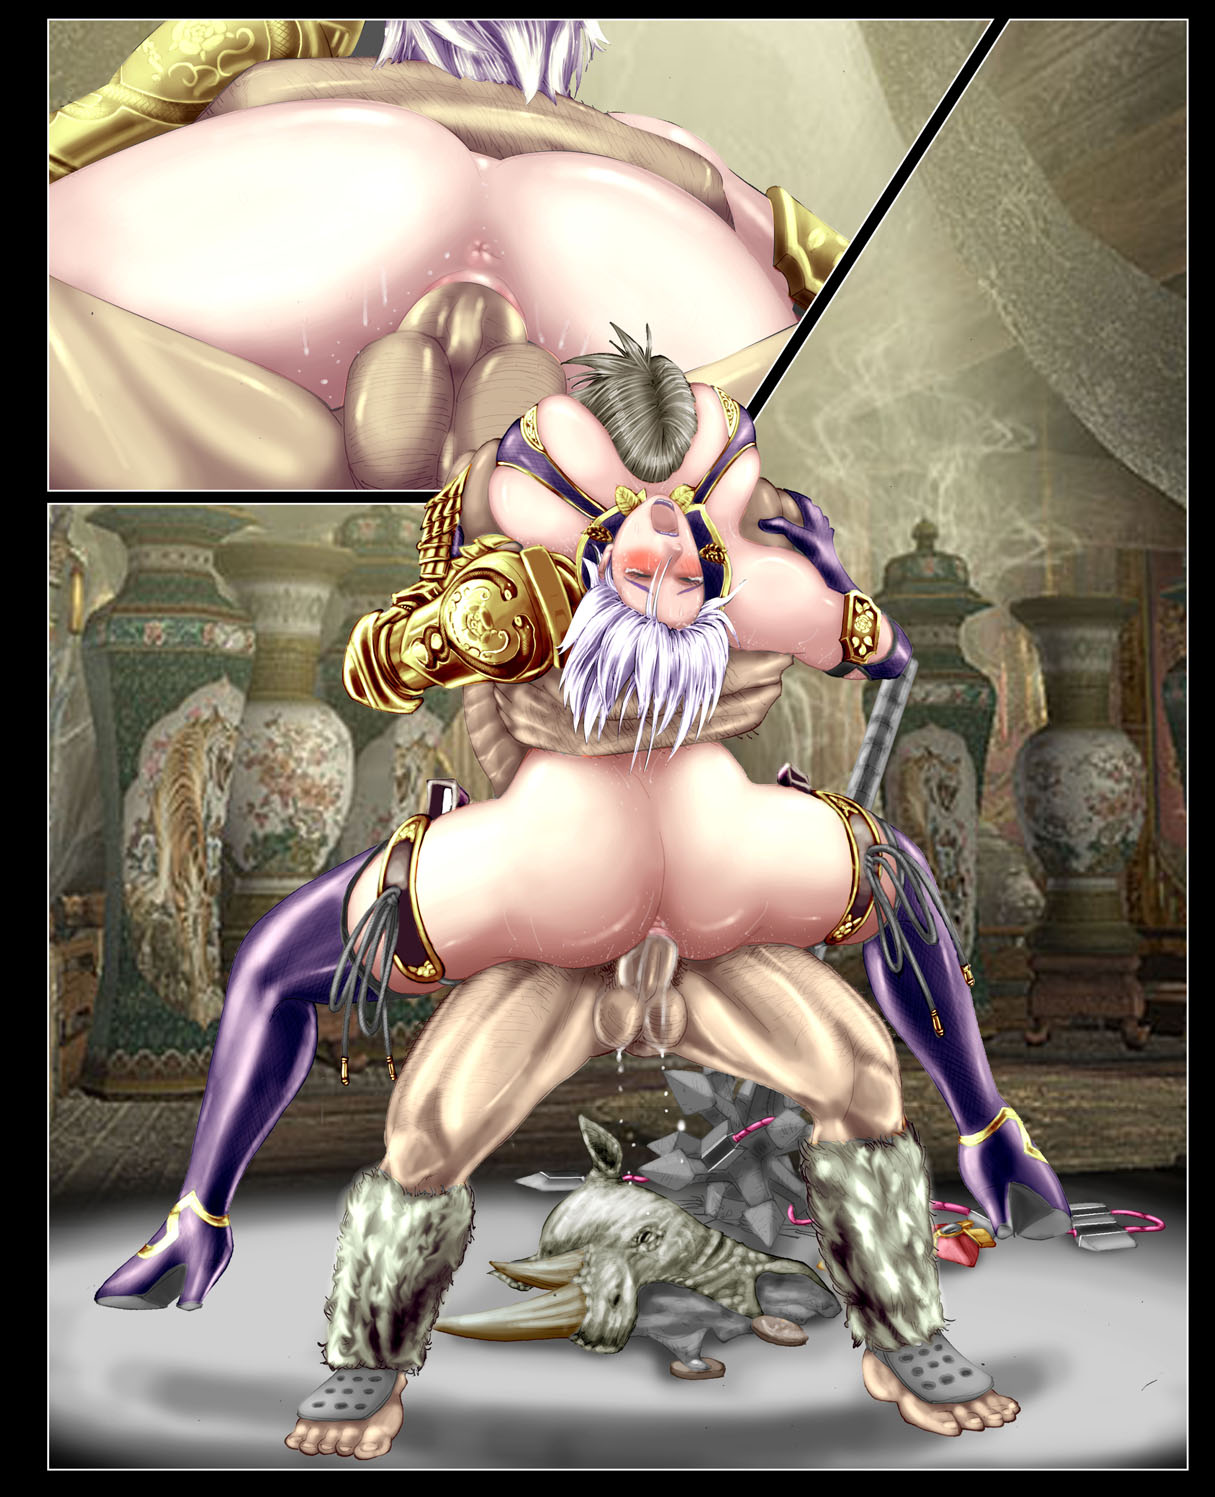 nude calibur 5 mod soul Wolverine and the x men colossus